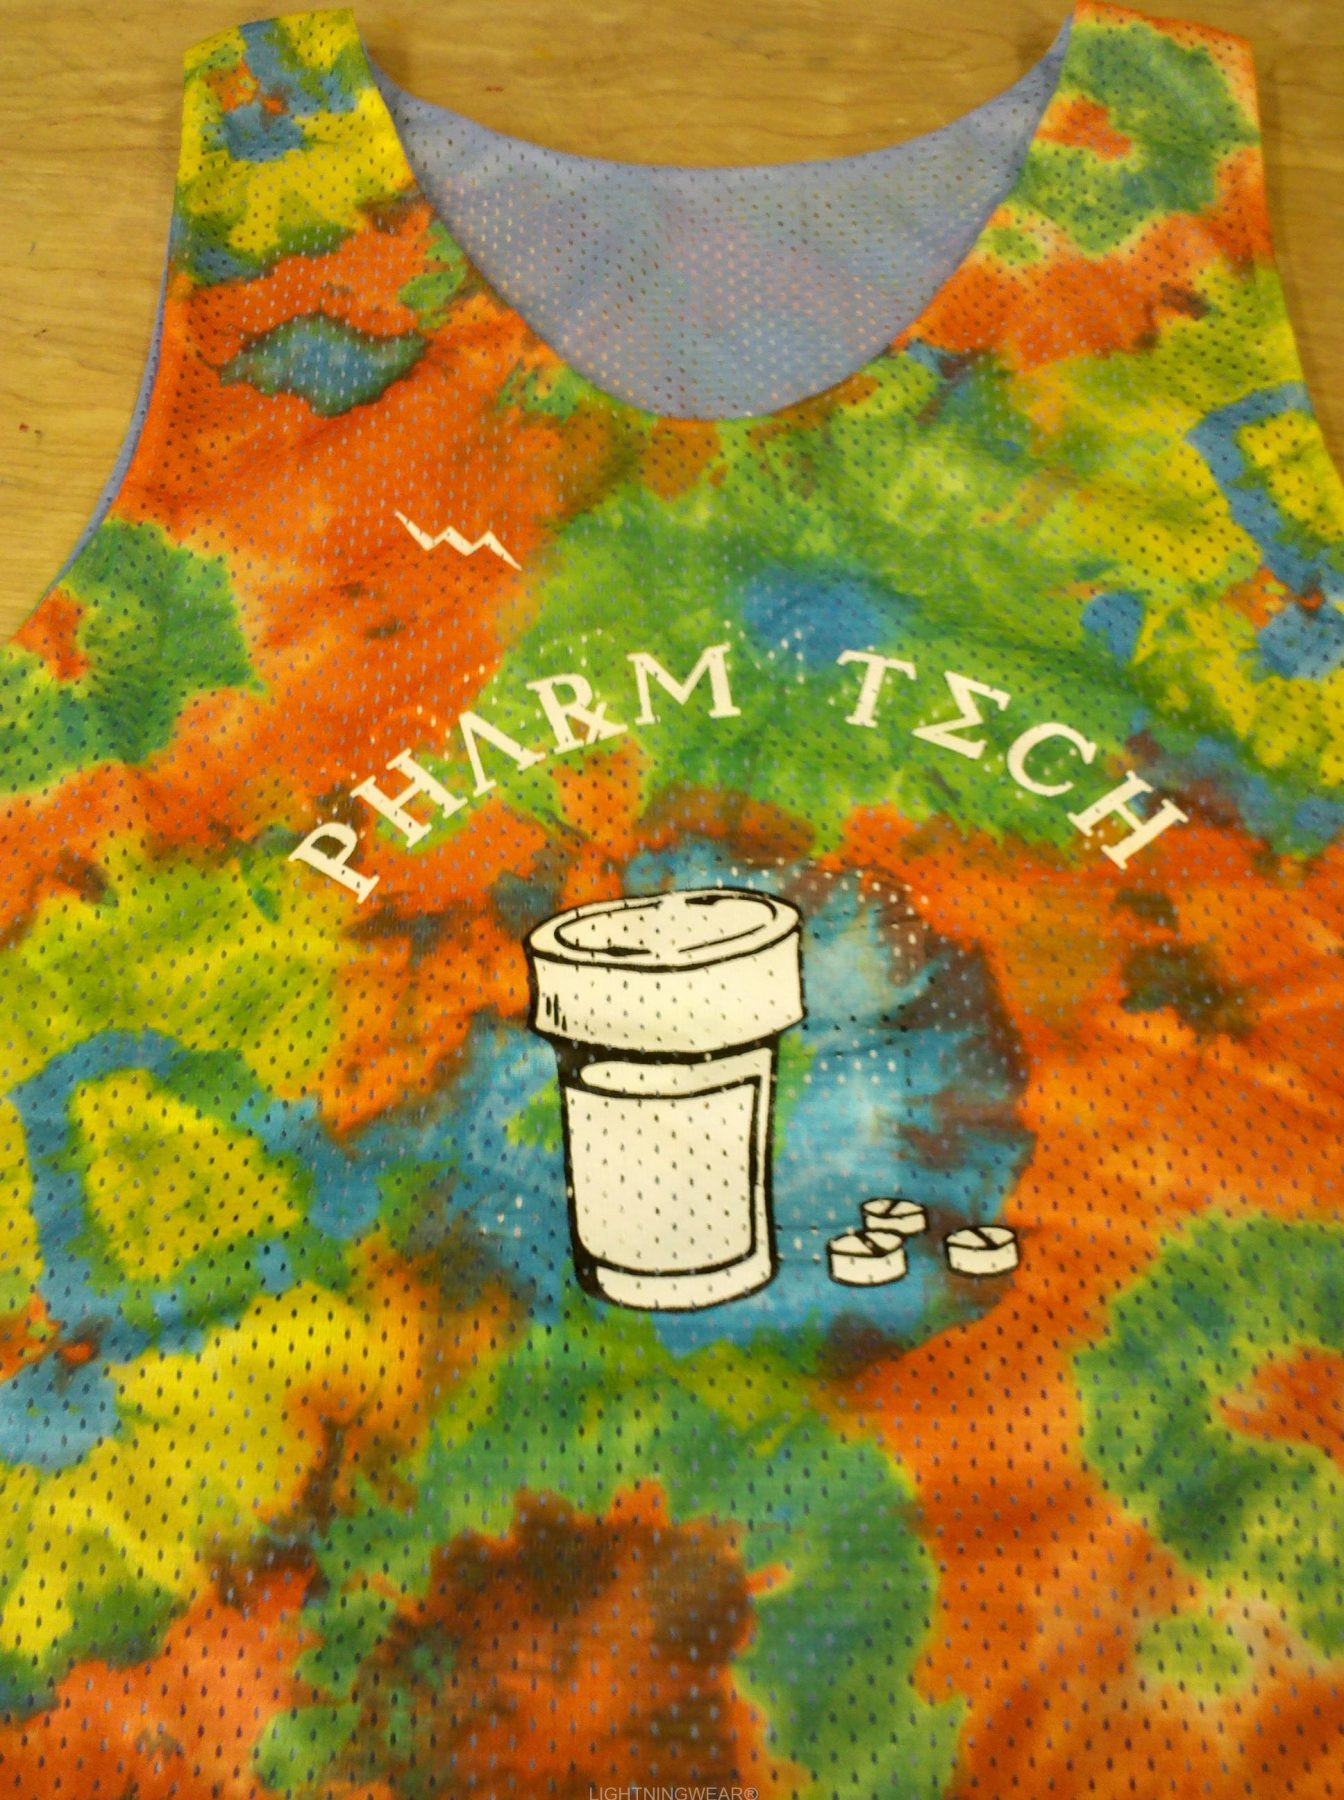 pharm tech pinnies